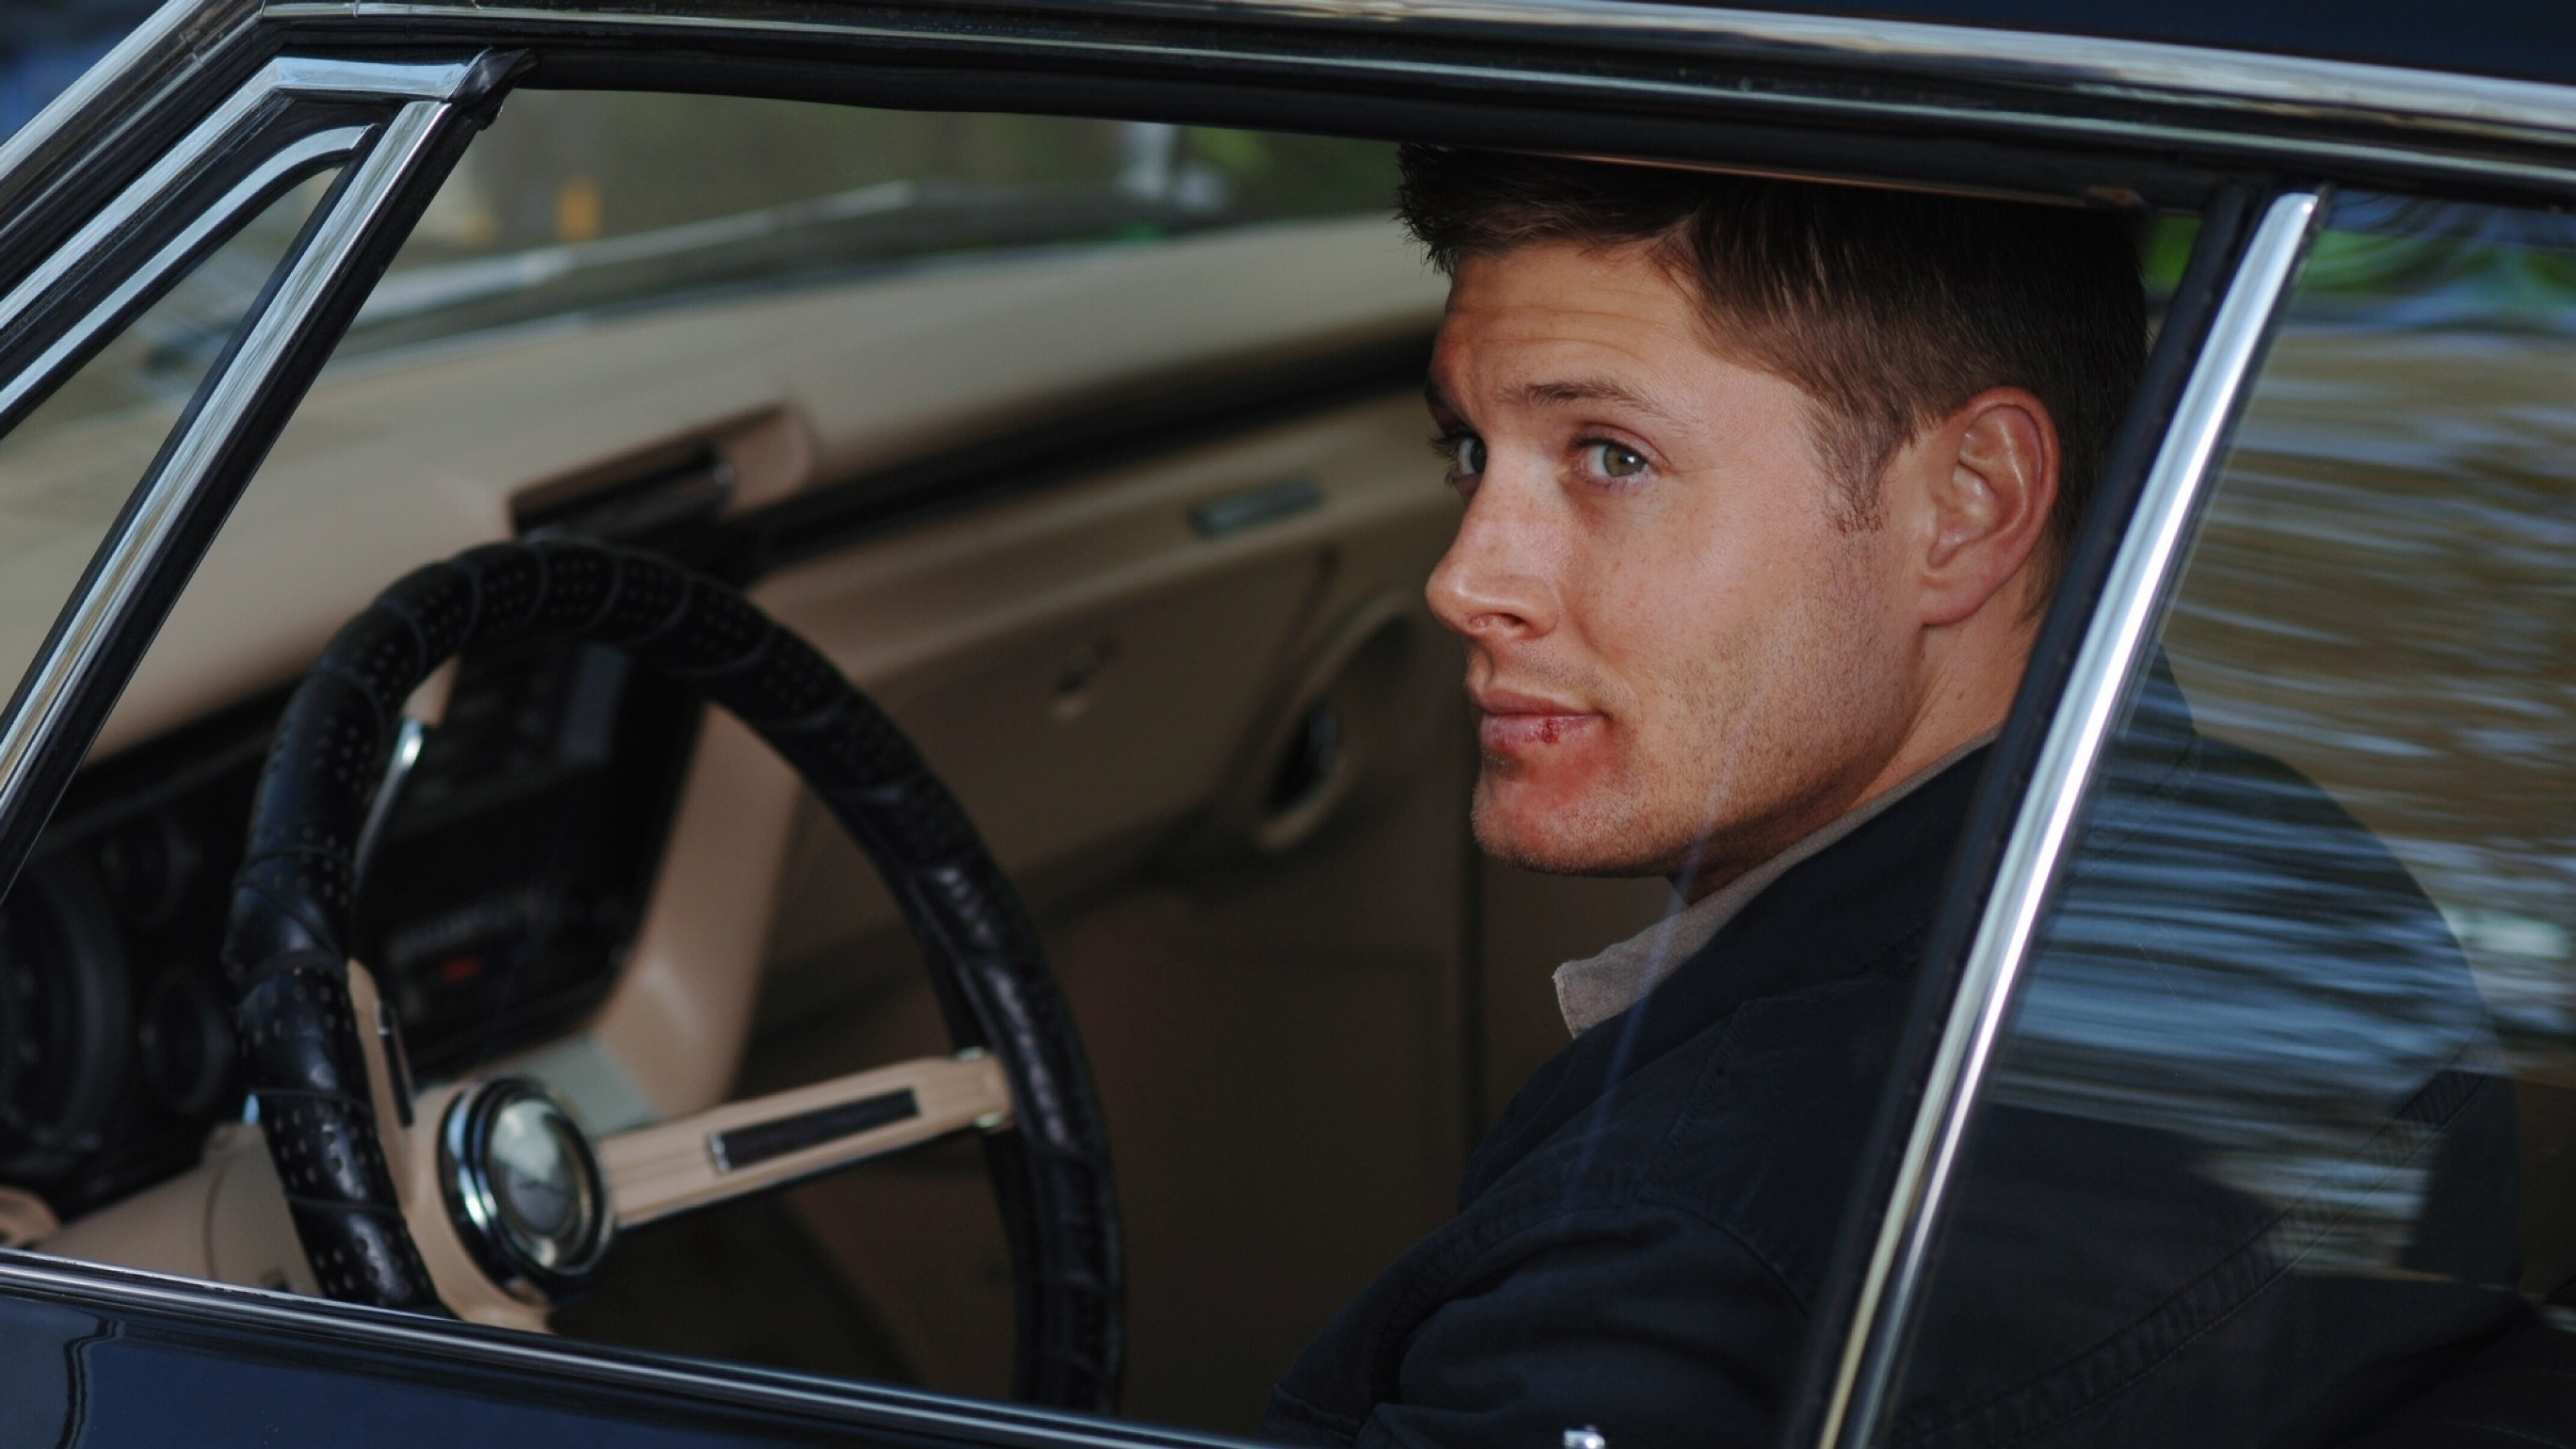 3840x2160  Wallpaper dean winchester, jensen ackles, supernatural, actor